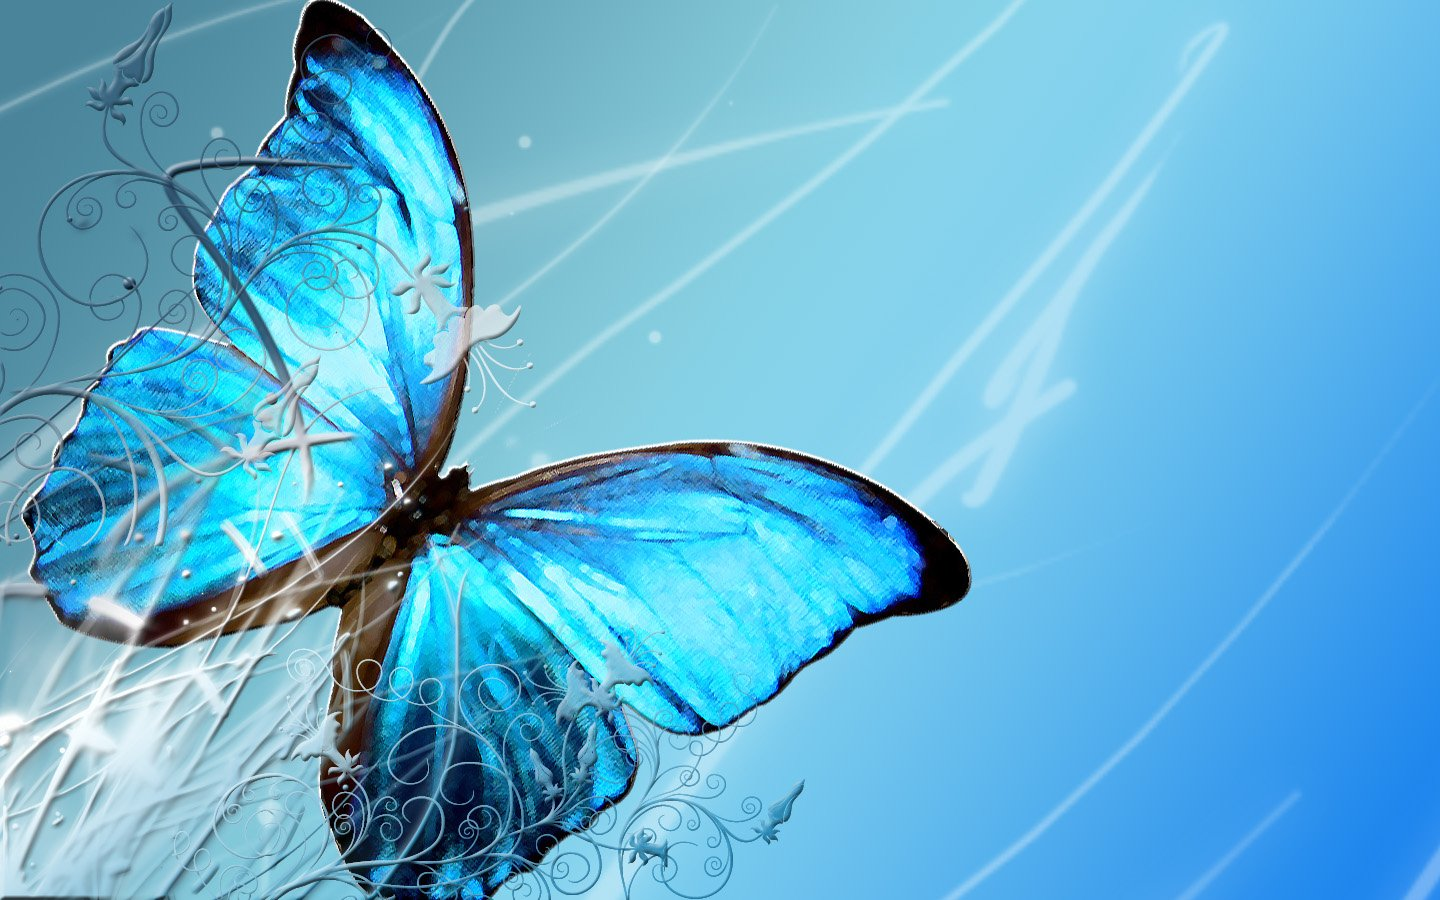 Butterfly Wallpaper High Quality HD Wallpaper with 1440x900 Resolution 1440x900